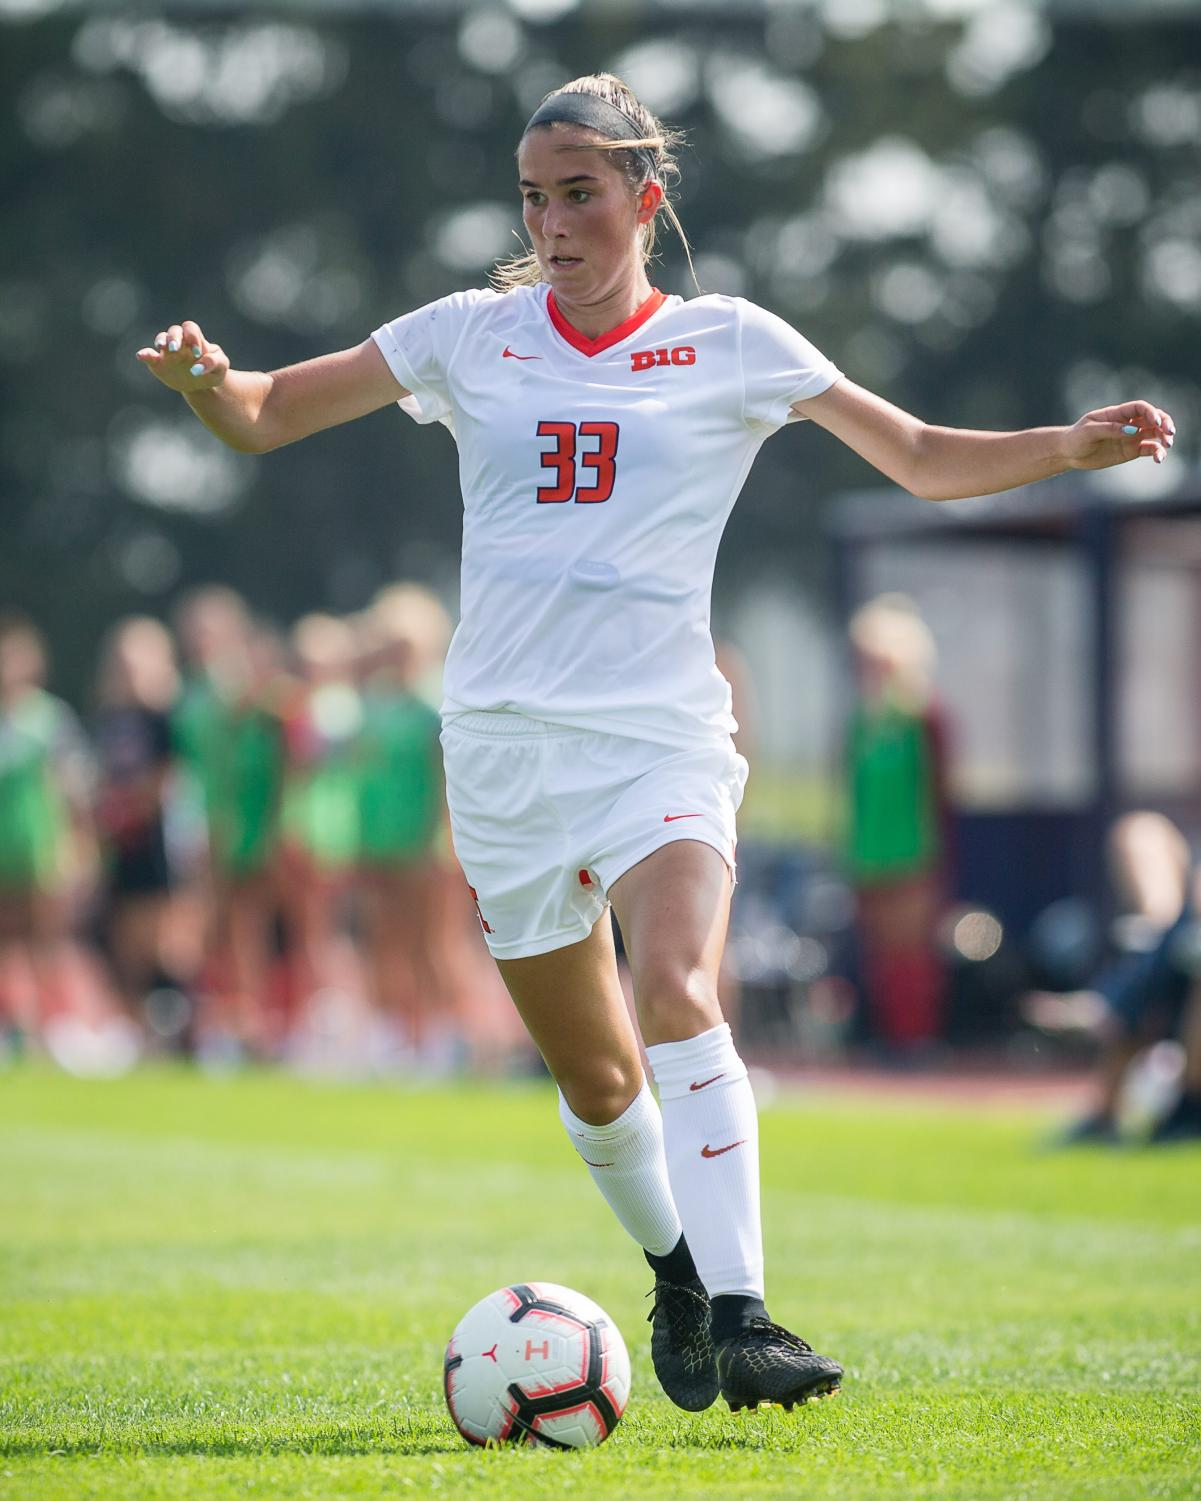 Illinois defender Ashley Cathro (33) dribbles the ball during the game against Northern Illinois at the Illinois Soccer Stadium on Sunday, Aug. 26, 2018. The Illini won 8-0.